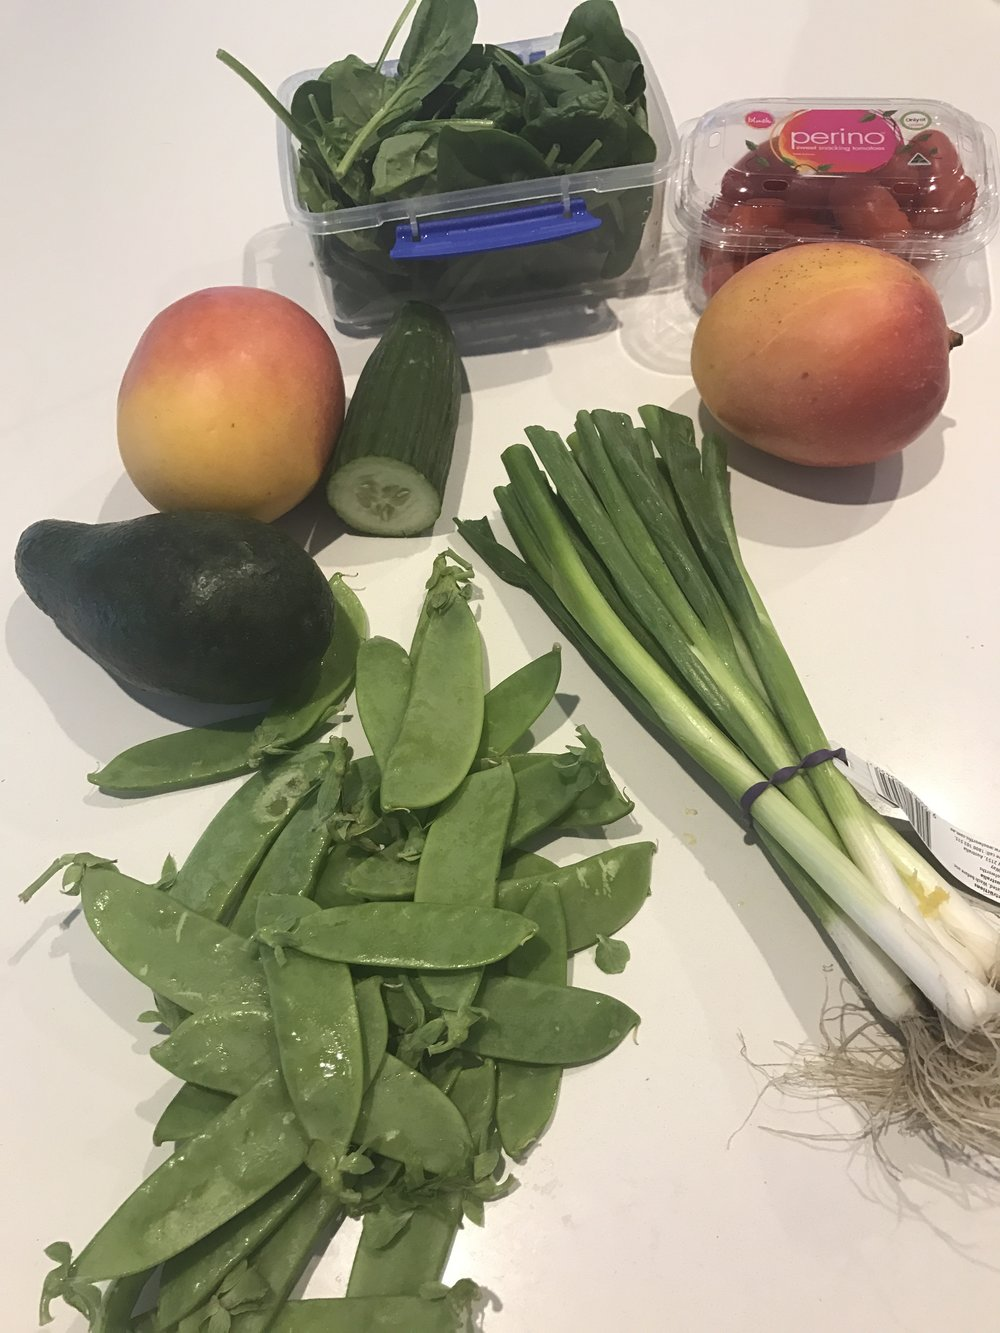 Chop up all ingredients - Avocado, Spring Onions, Cherry Tomatoes, Cucumber, Mangos, and Beans.  Add to spinach with your favourite dressing.  Have on it's own, or with toasted pine nuts.  For a larger meal, purchase a cooked chicken as chicken and mango salad goes well together.